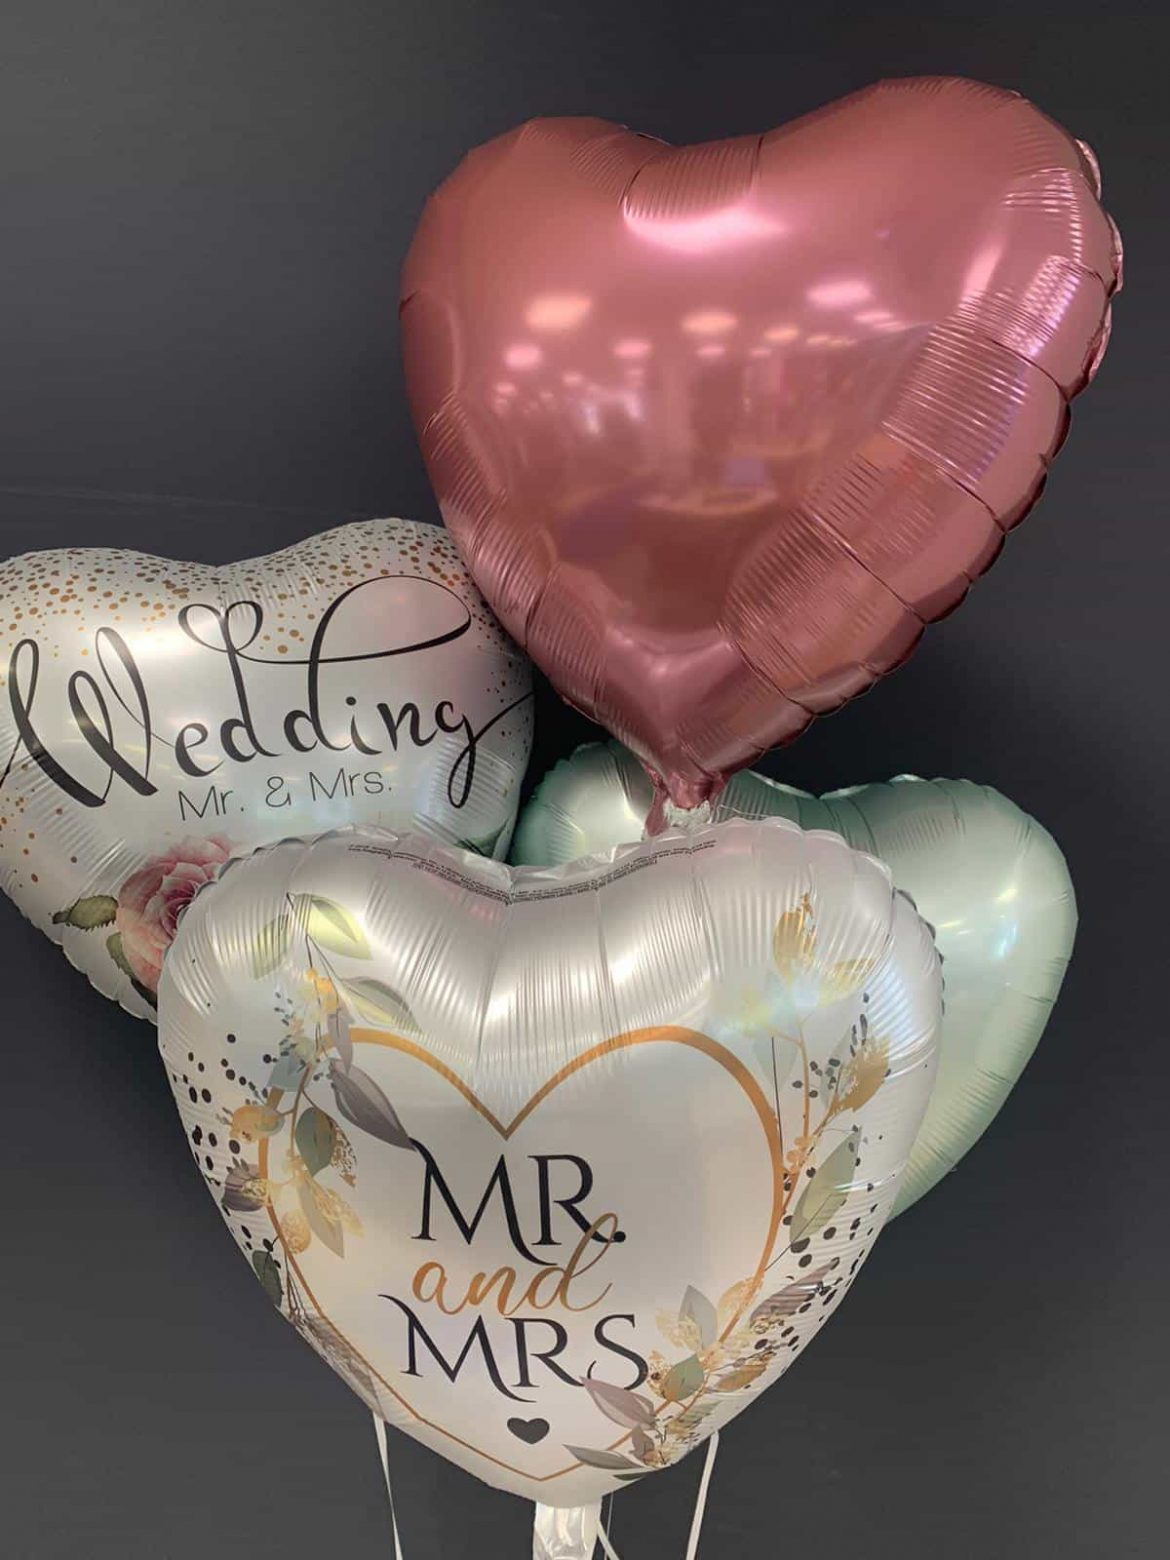 Wedding Mr & Mrs € 5,90 <br> Mr and Mrs € 5,90 <br> Dekoballons € 4,50 1